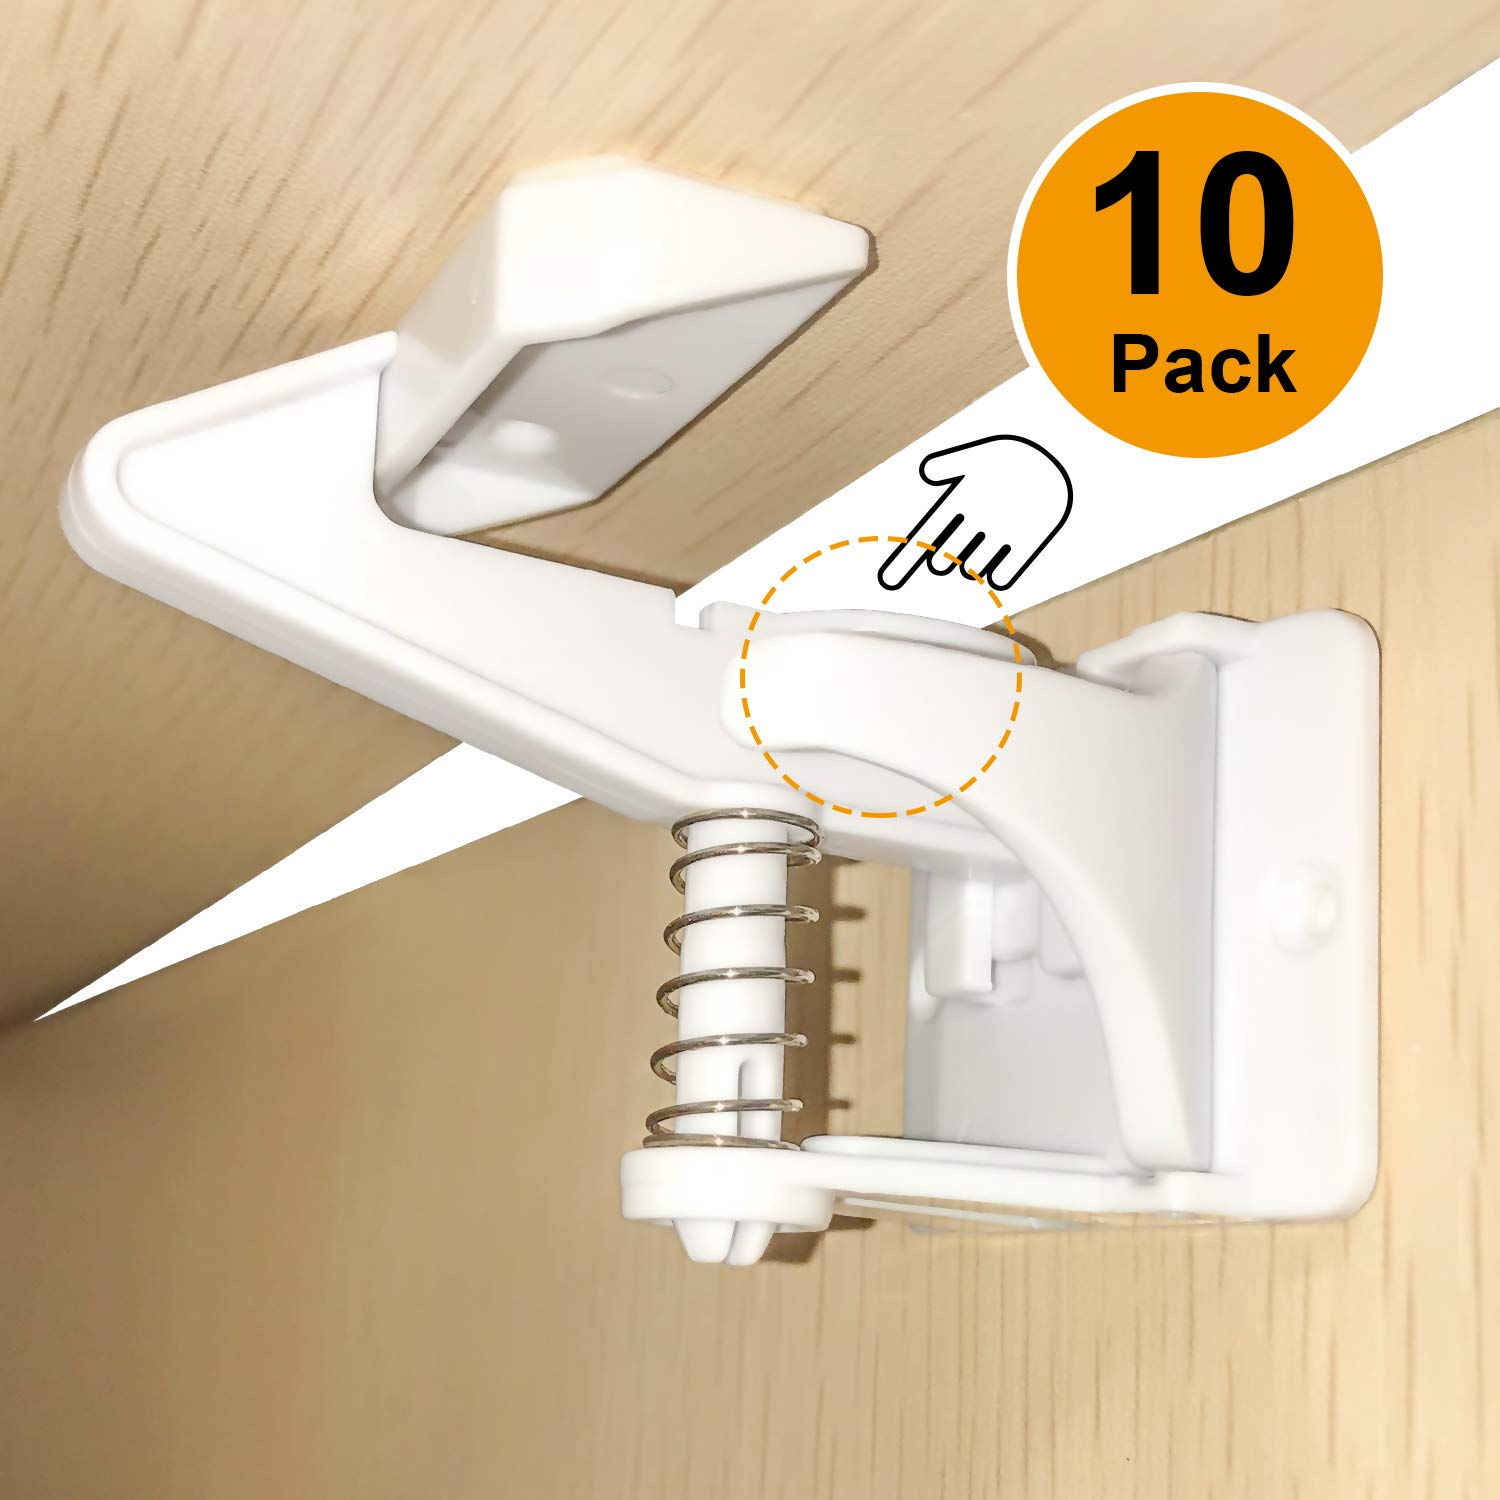 Cabinet Locks Child Safety, 3M Adhesive Spring Loaded Latches for Baby Safety, Easy Installation, No Tools or Drills Needed, Invisible Design with Buckles Fit Most Cabinets, Drawers and Closets